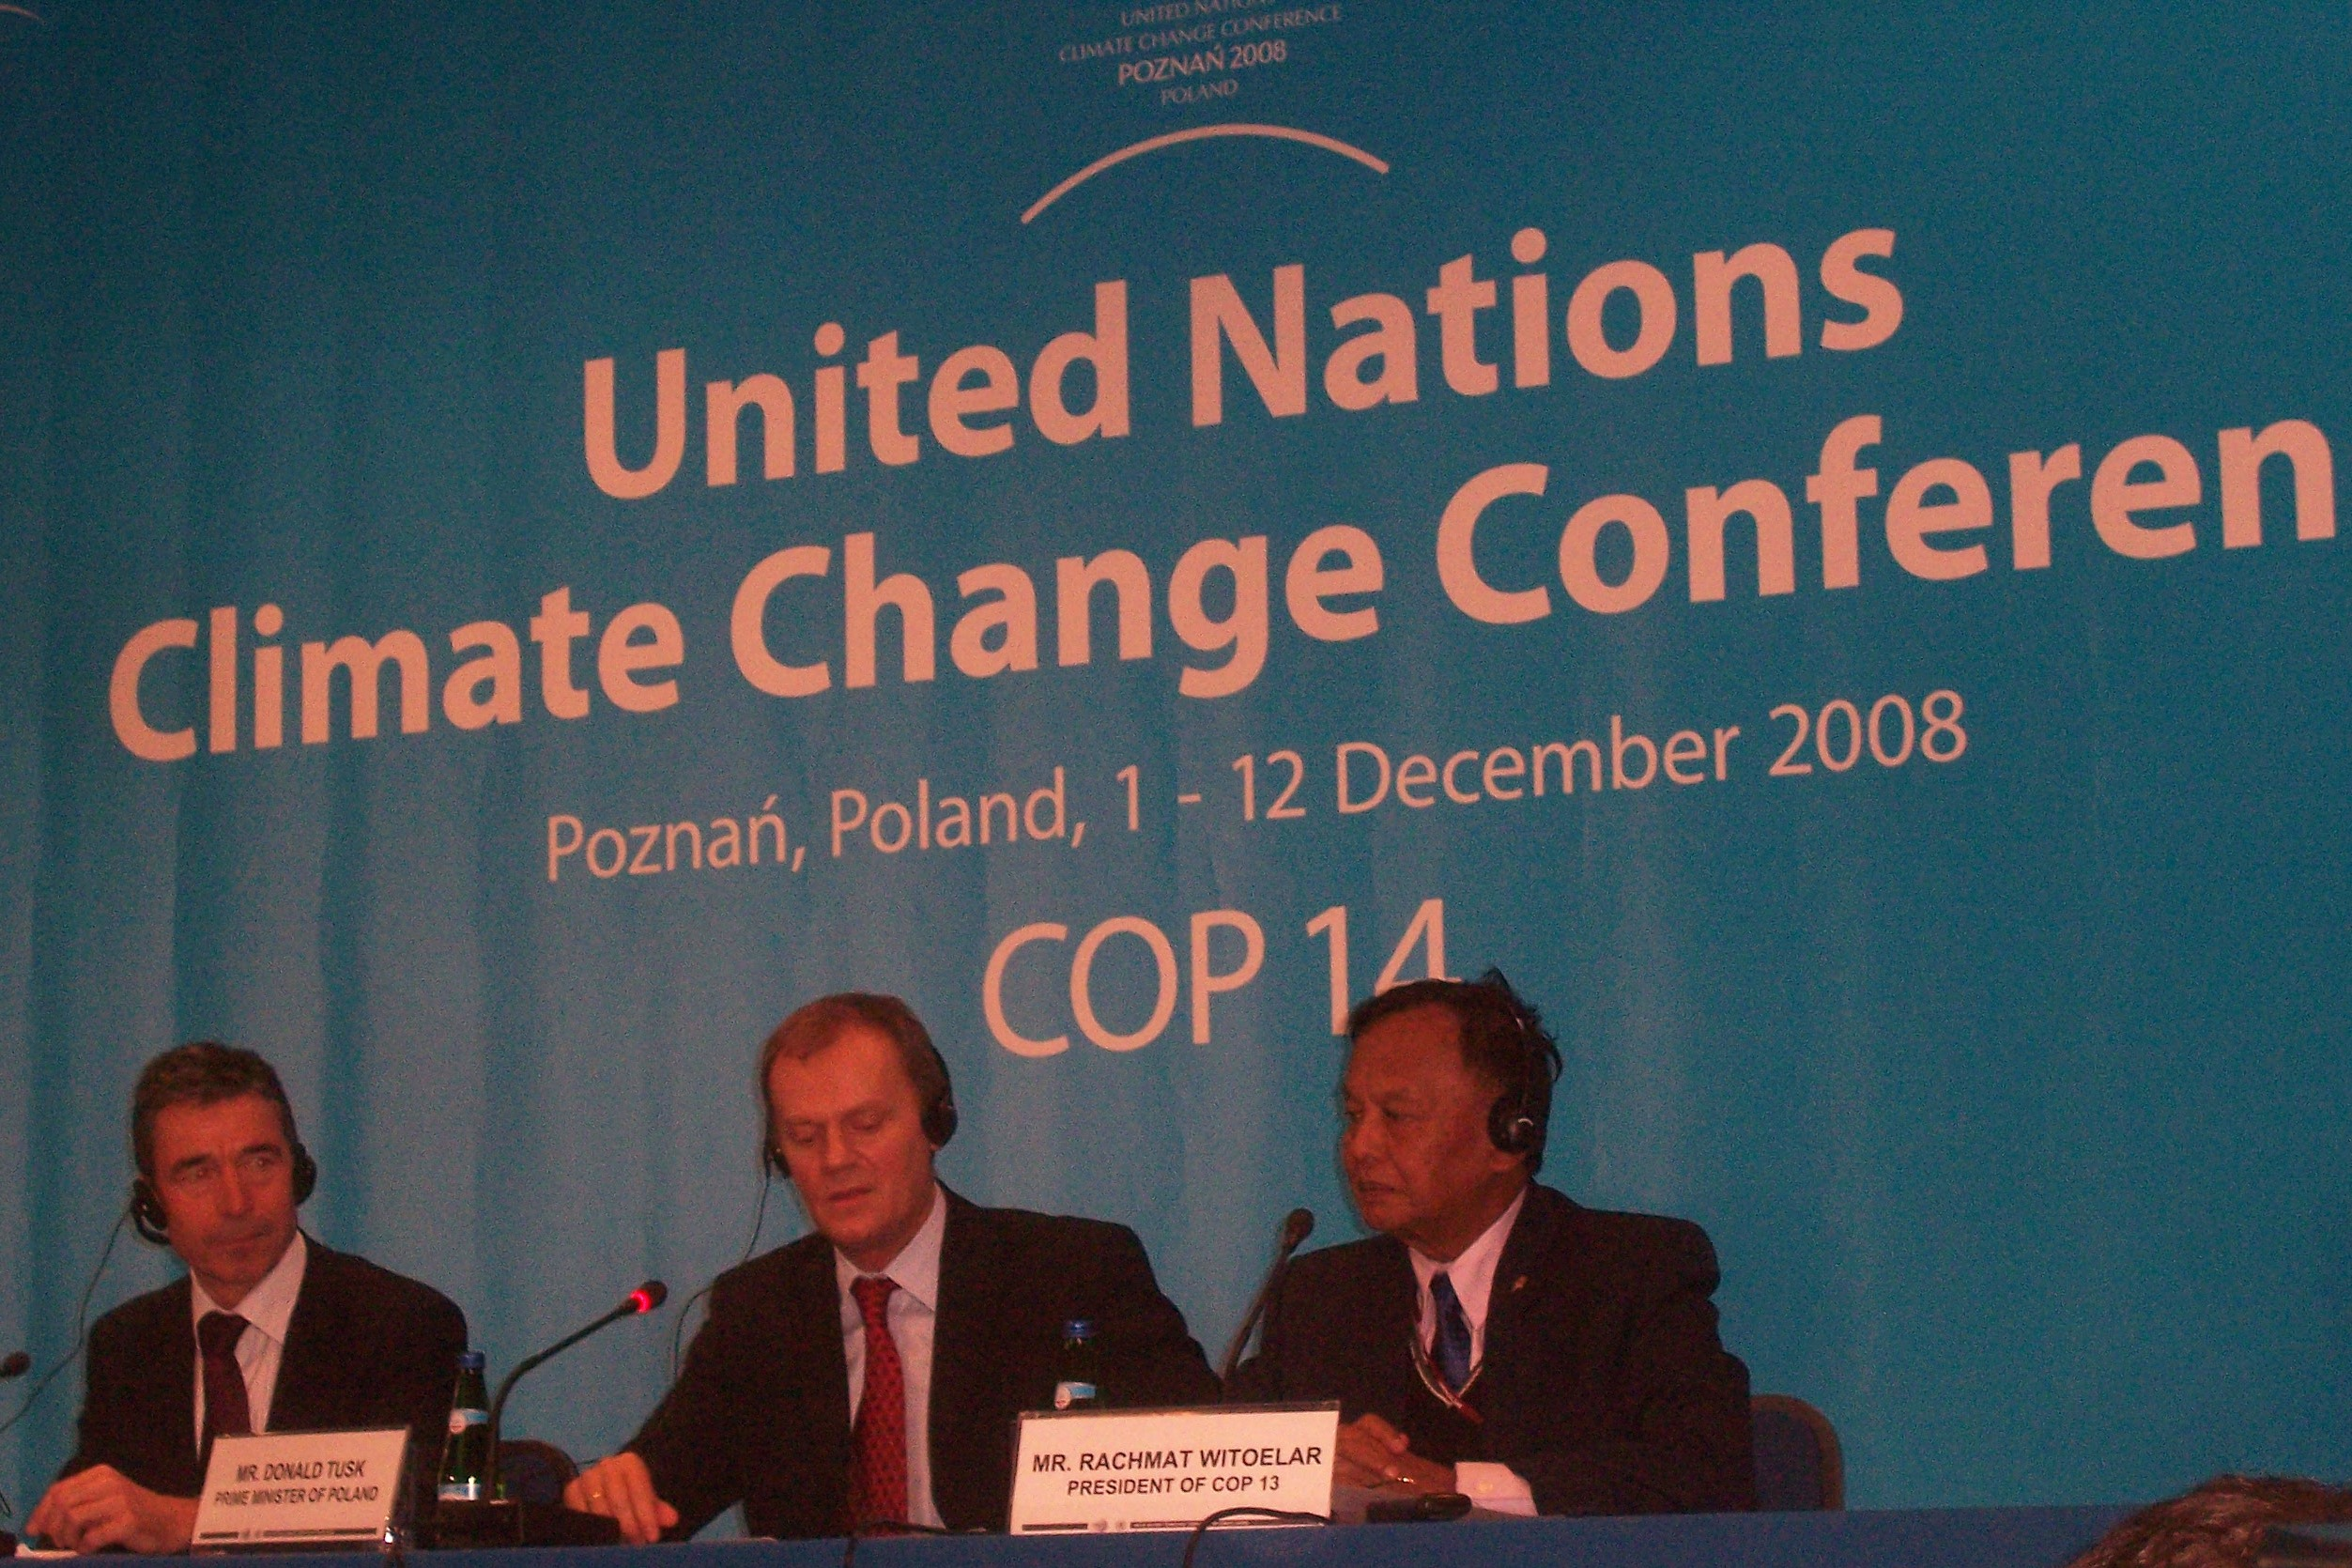 COP14_-_Poznan_2008_UN_Climate_Change_Conference_-_Troika_Press_Conference_(Rasmussen,_Tusk,_Witoelar)